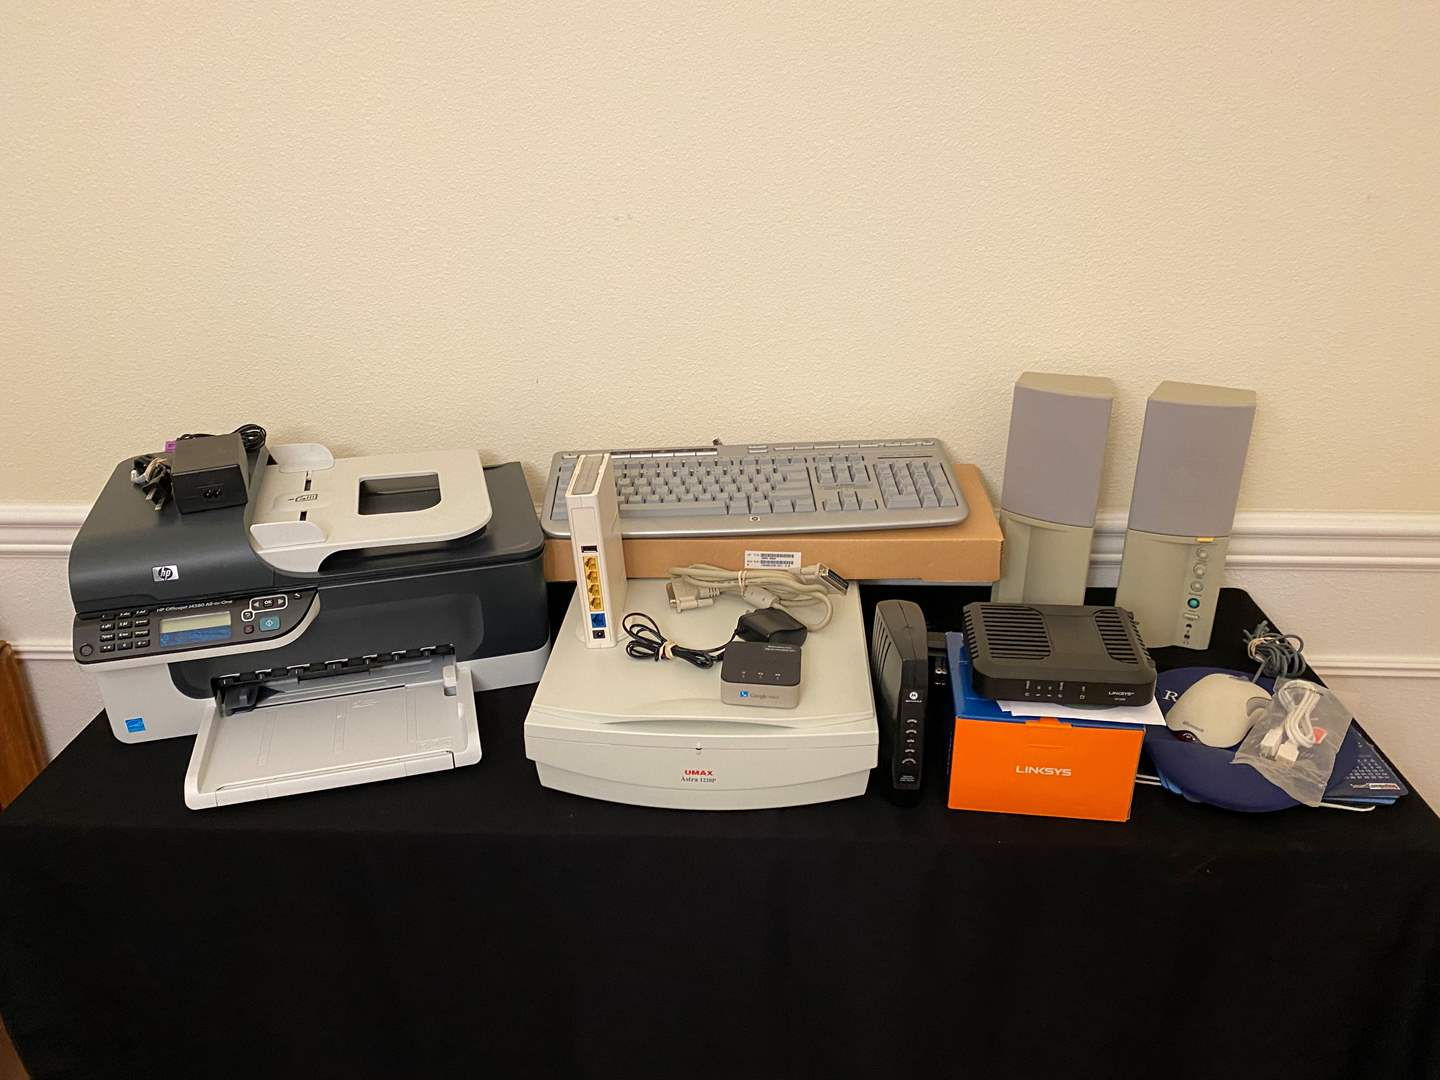 Lot # 173 - HP All-in-One Printer, Scanner, Routers, Speakers, Keyboards & More..  (main image)